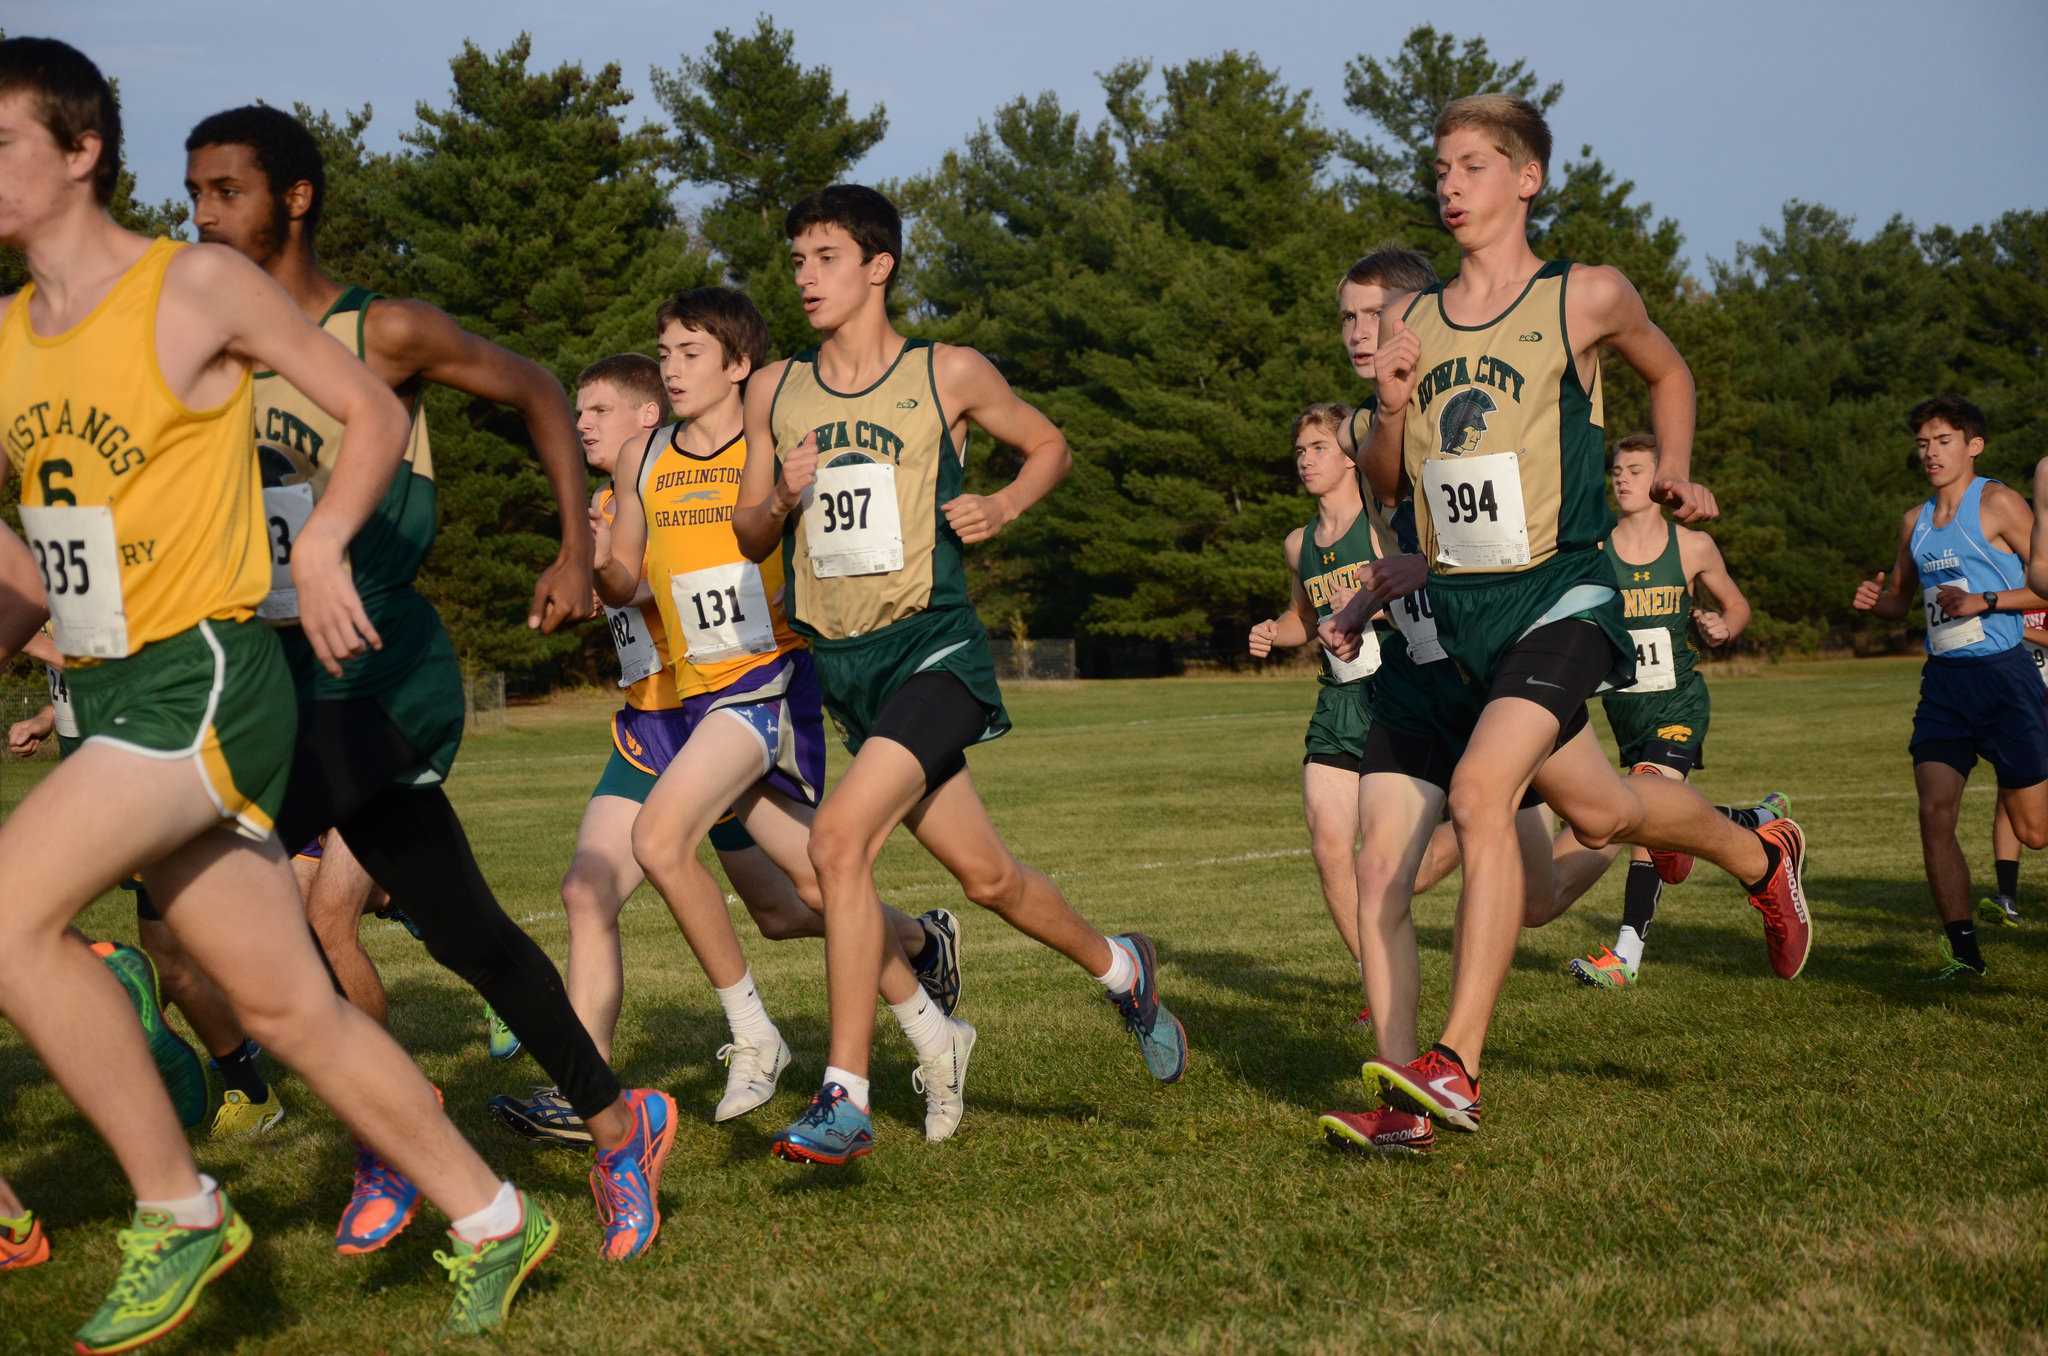 Jared Bailey '18, Andrew Murley '17 and Ali Ali '17 run at the 2015 State Cross Country Championships.